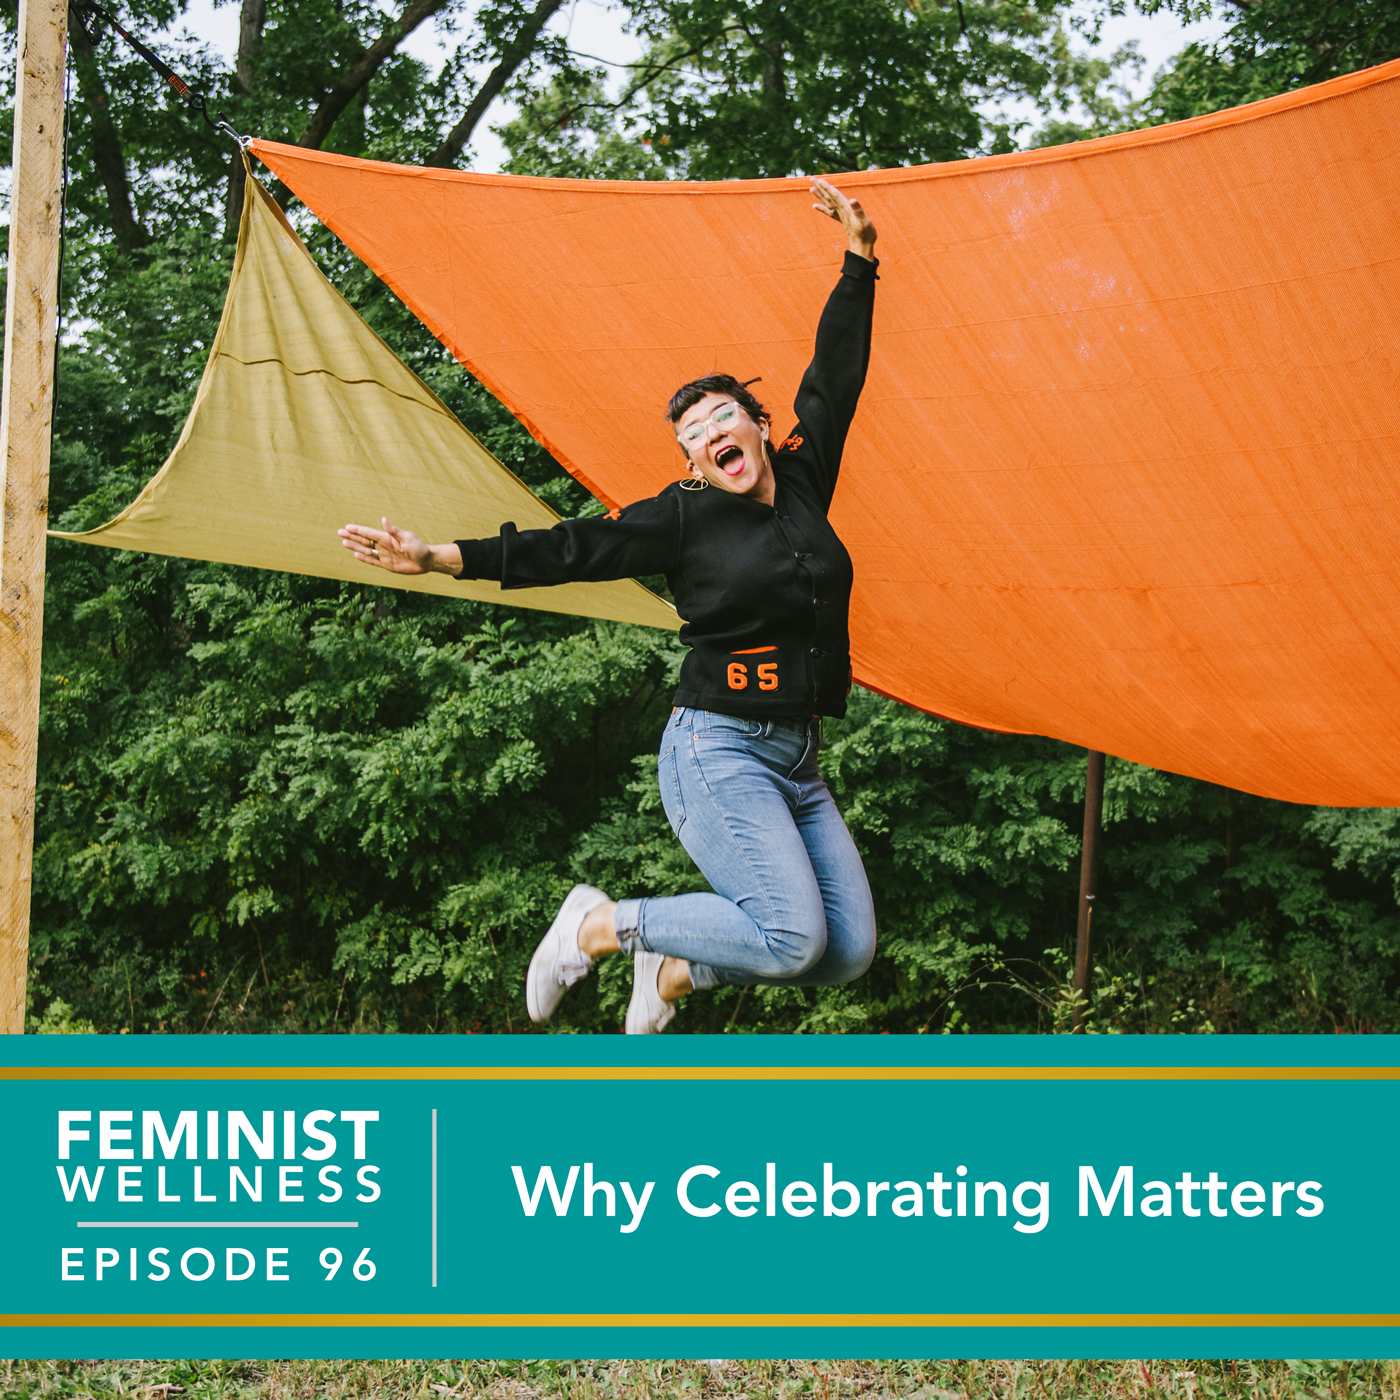 Why Celebrating Matters